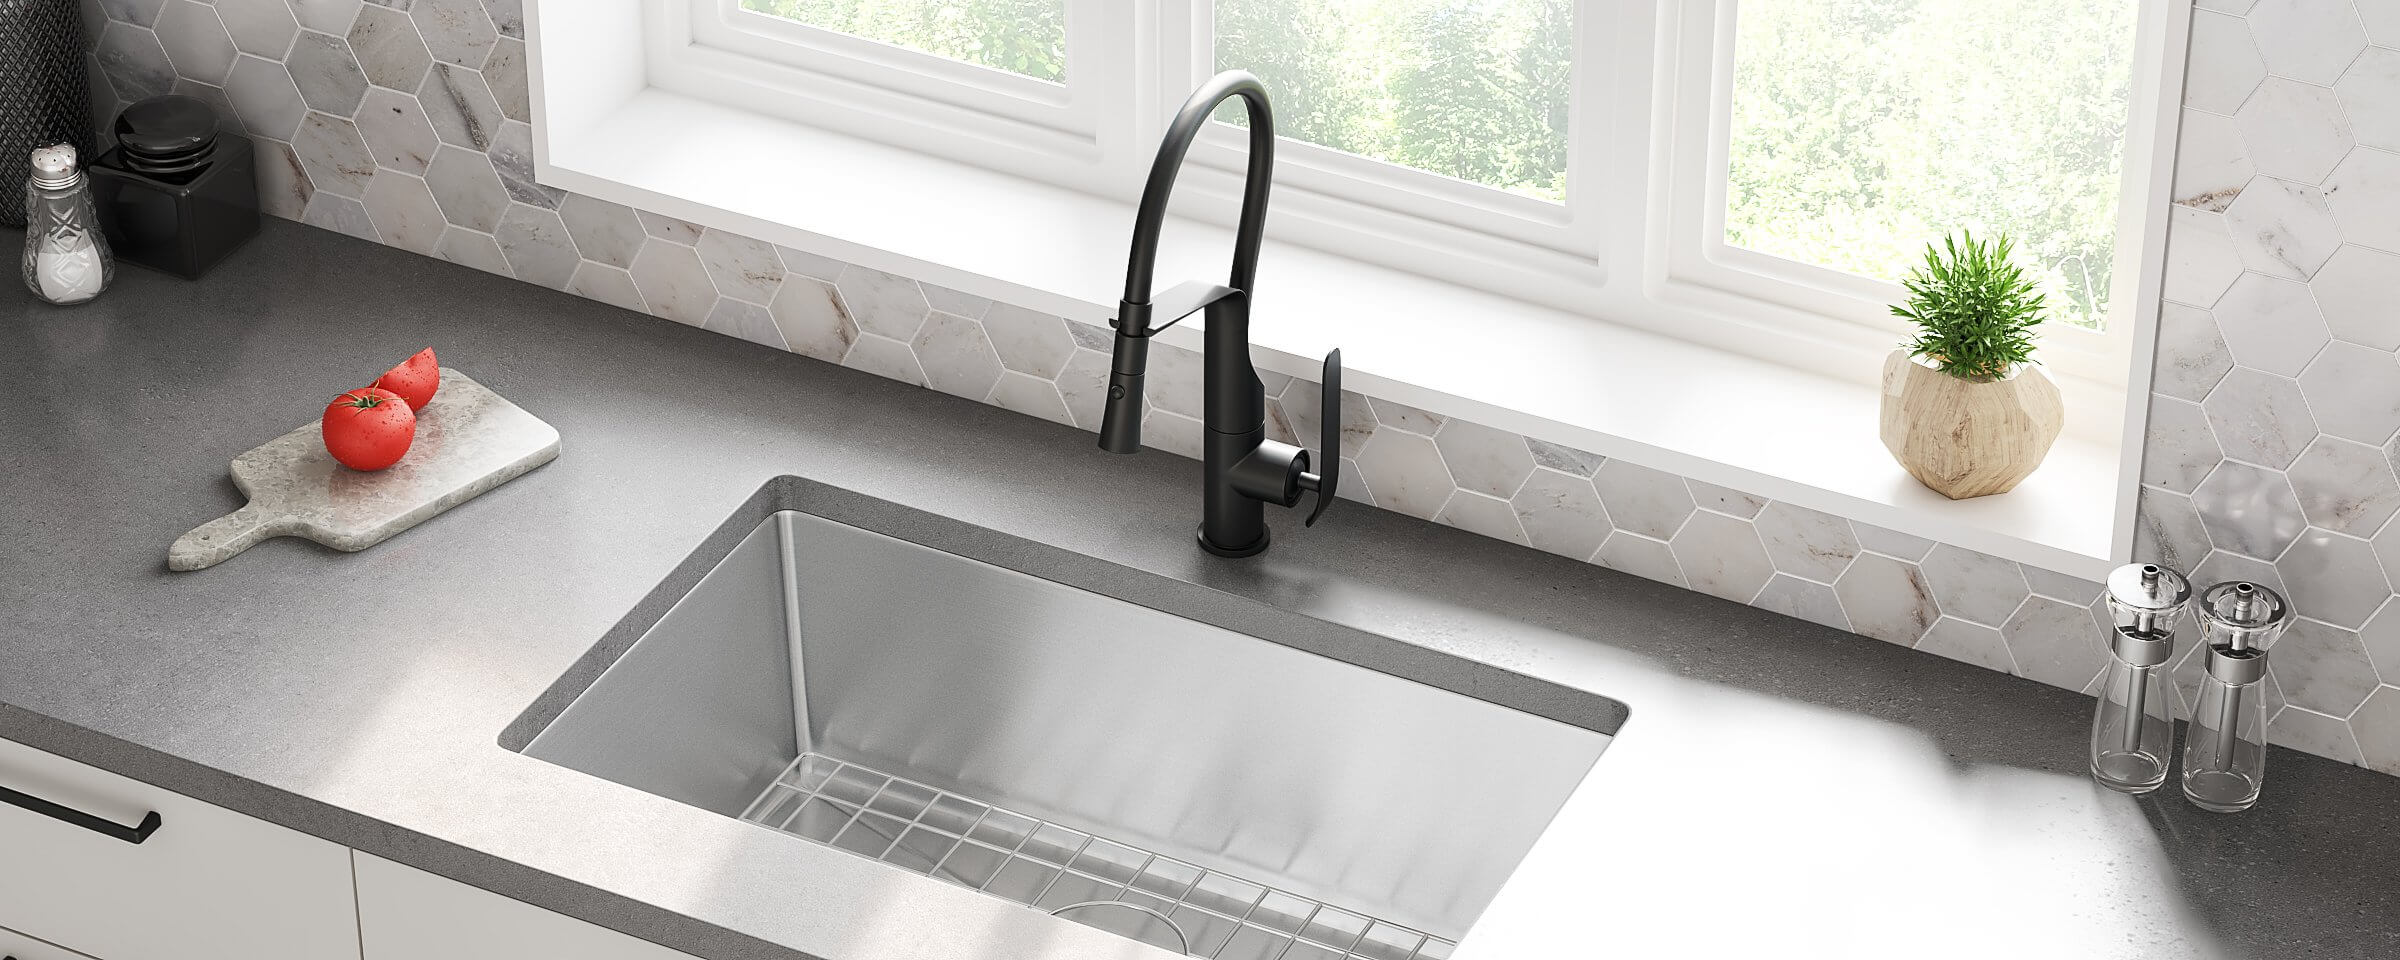 24 inch kitchen sink product allora usa